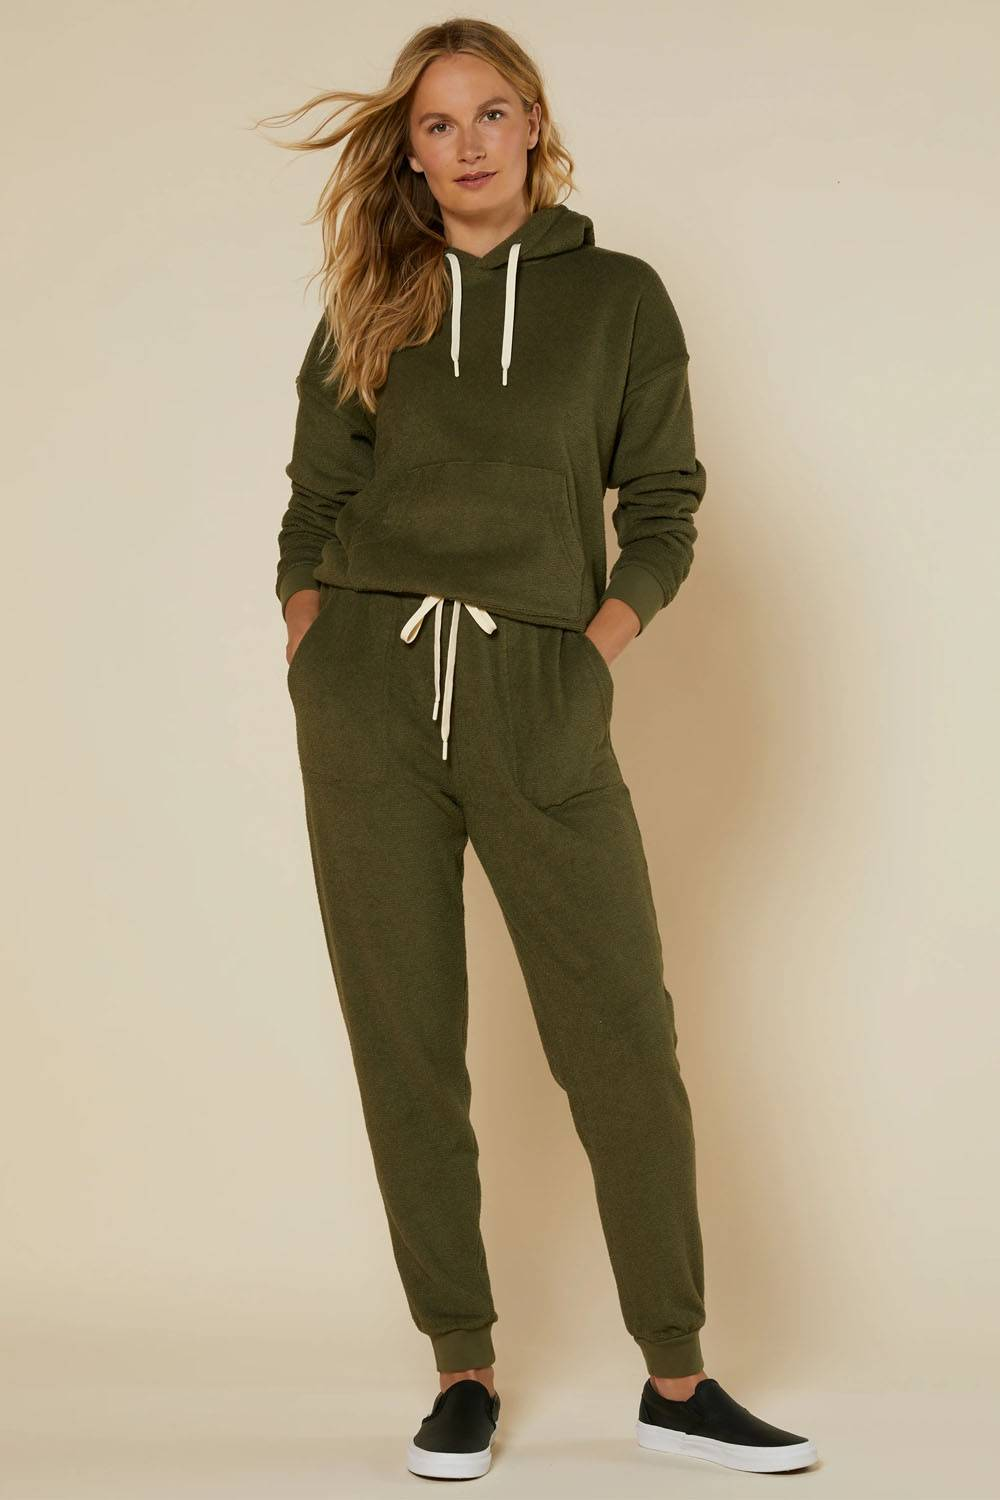 outerknown sustainable loungewear usa made